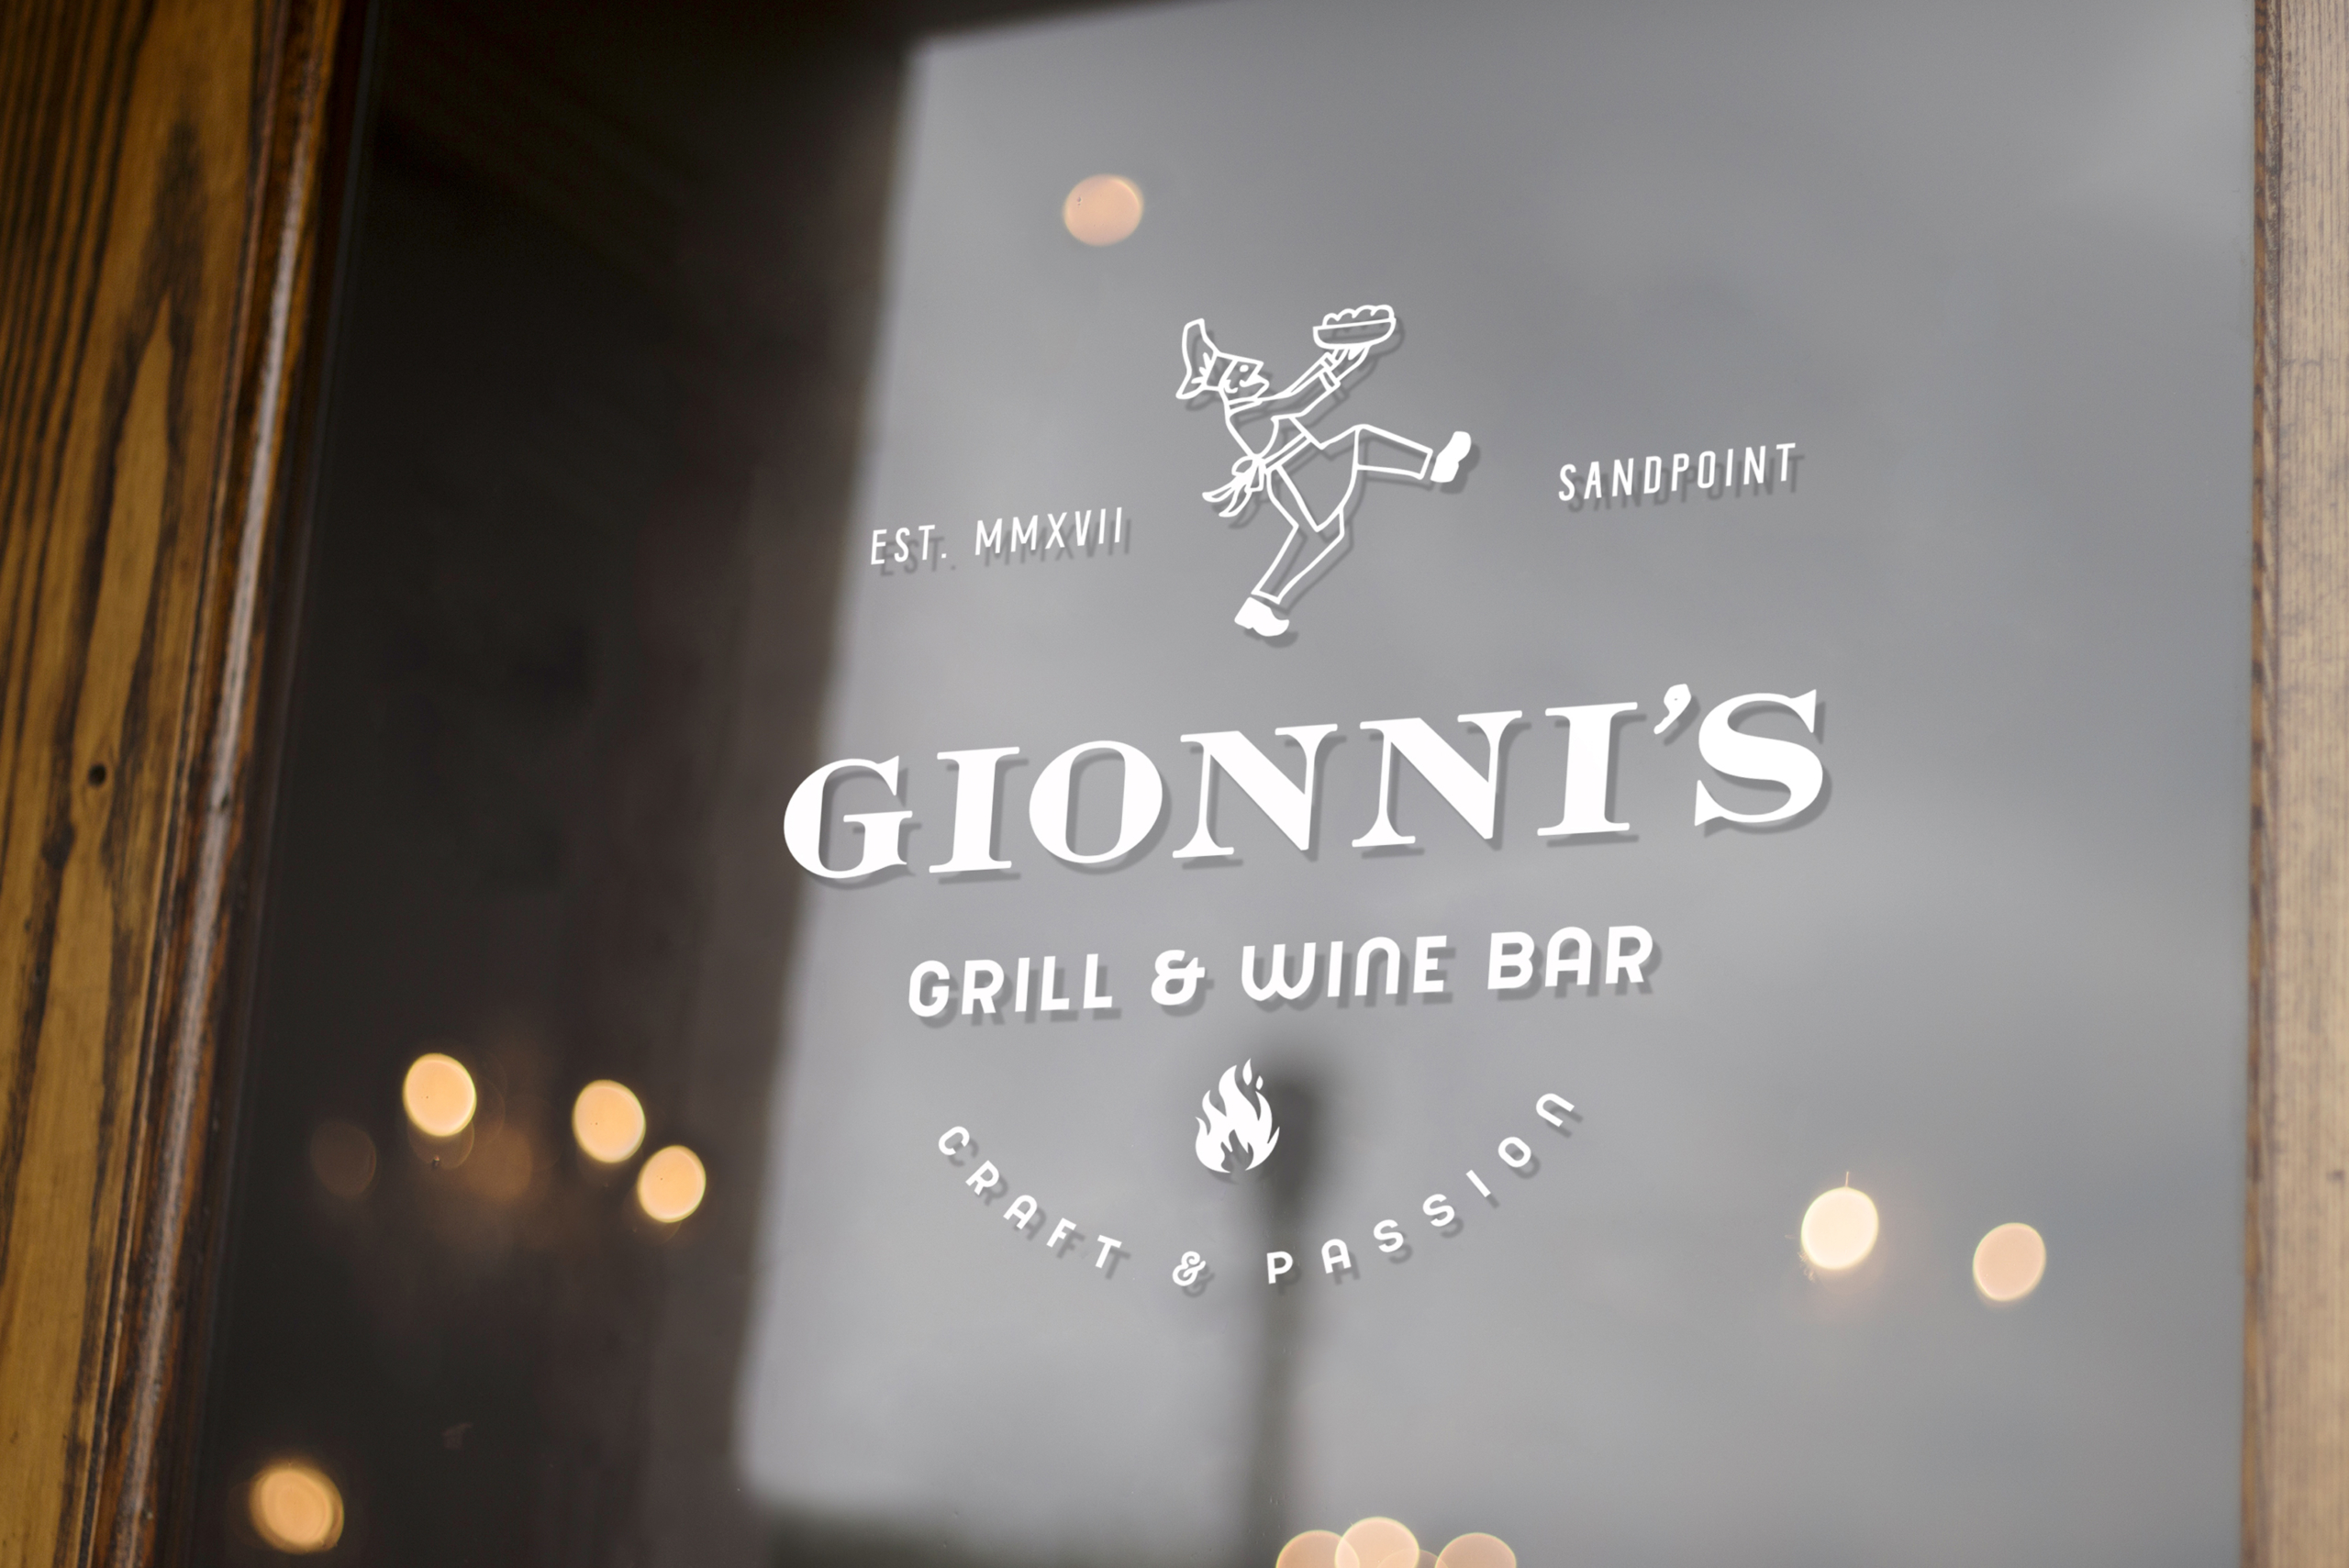 https://bschelling.com/wp-content/uploads/2018/07/gionnis_window-scaled.jpg